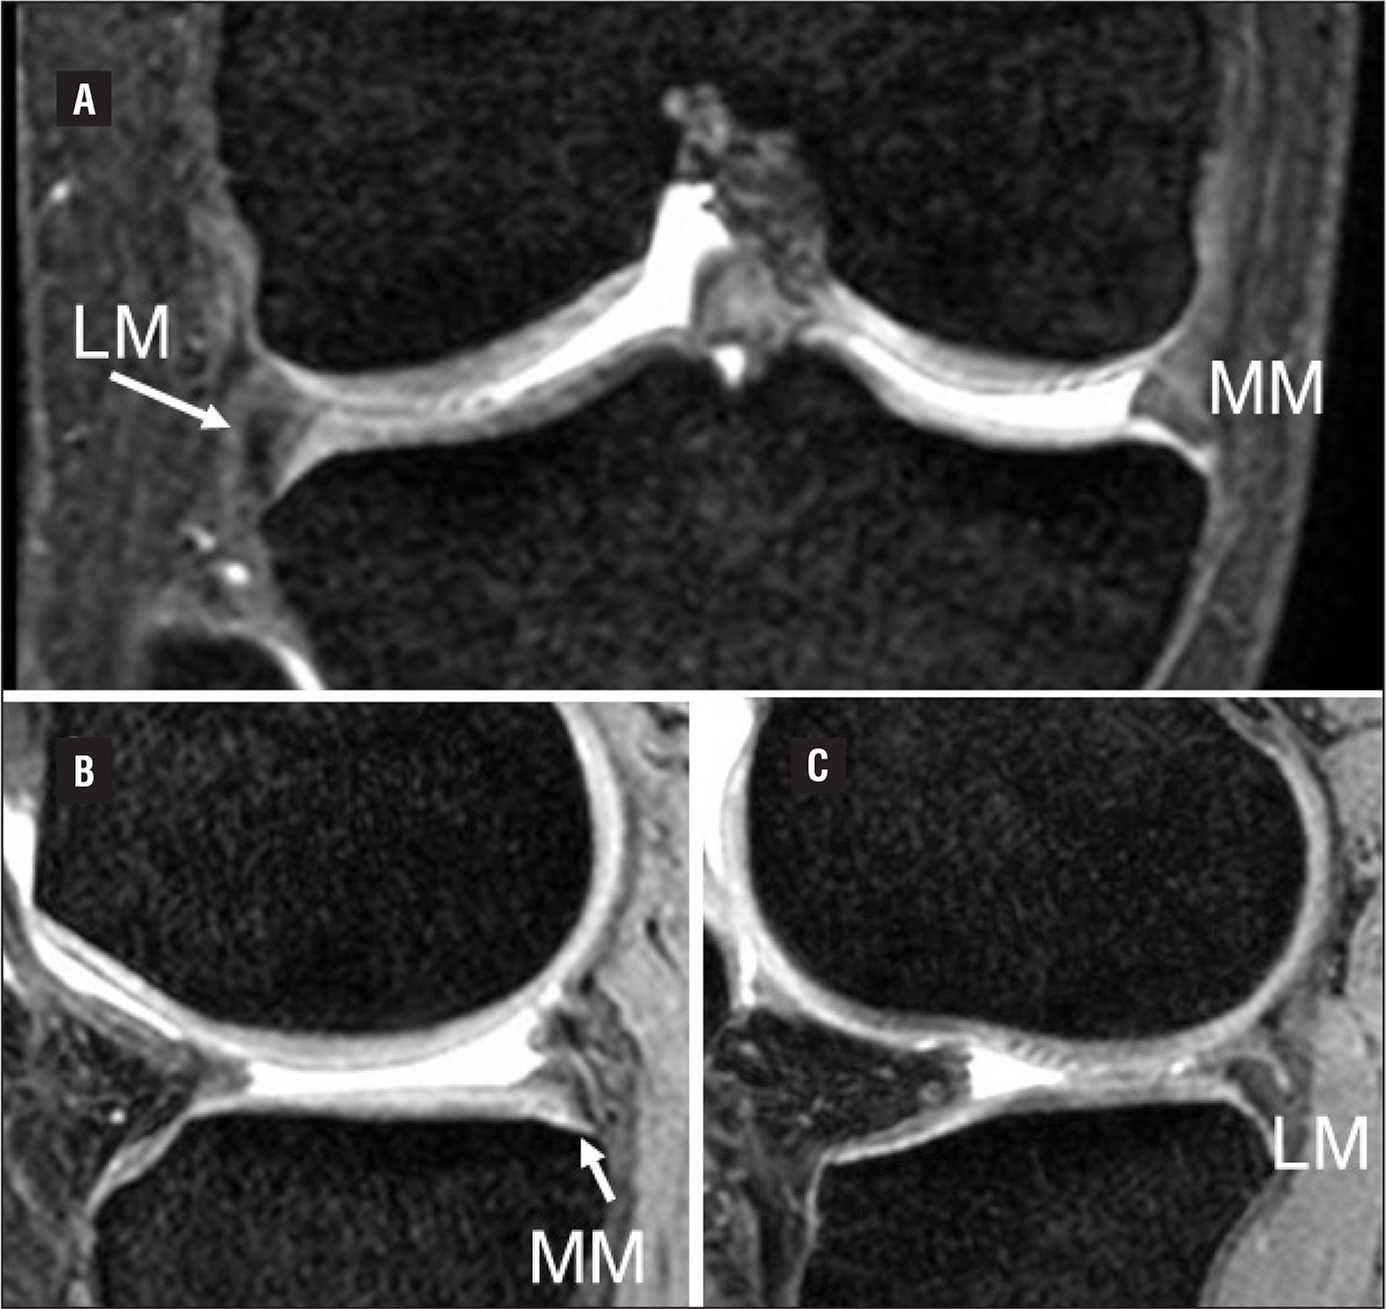 T2-star–weighted magnetic resonance images of the right knee. Coronal view of the right knee (A), and sagittal view of the medial (B) and lateral (C) compartments. A contralateral magnetic resonance image showed meniscal abnormalities similar to those of the left knee: hypoplastic medial and lateral menisci with partial fusion with tibial cartilage (arrow). Abbreviations: LM, lateral meniscus; MM, medial meniscus.